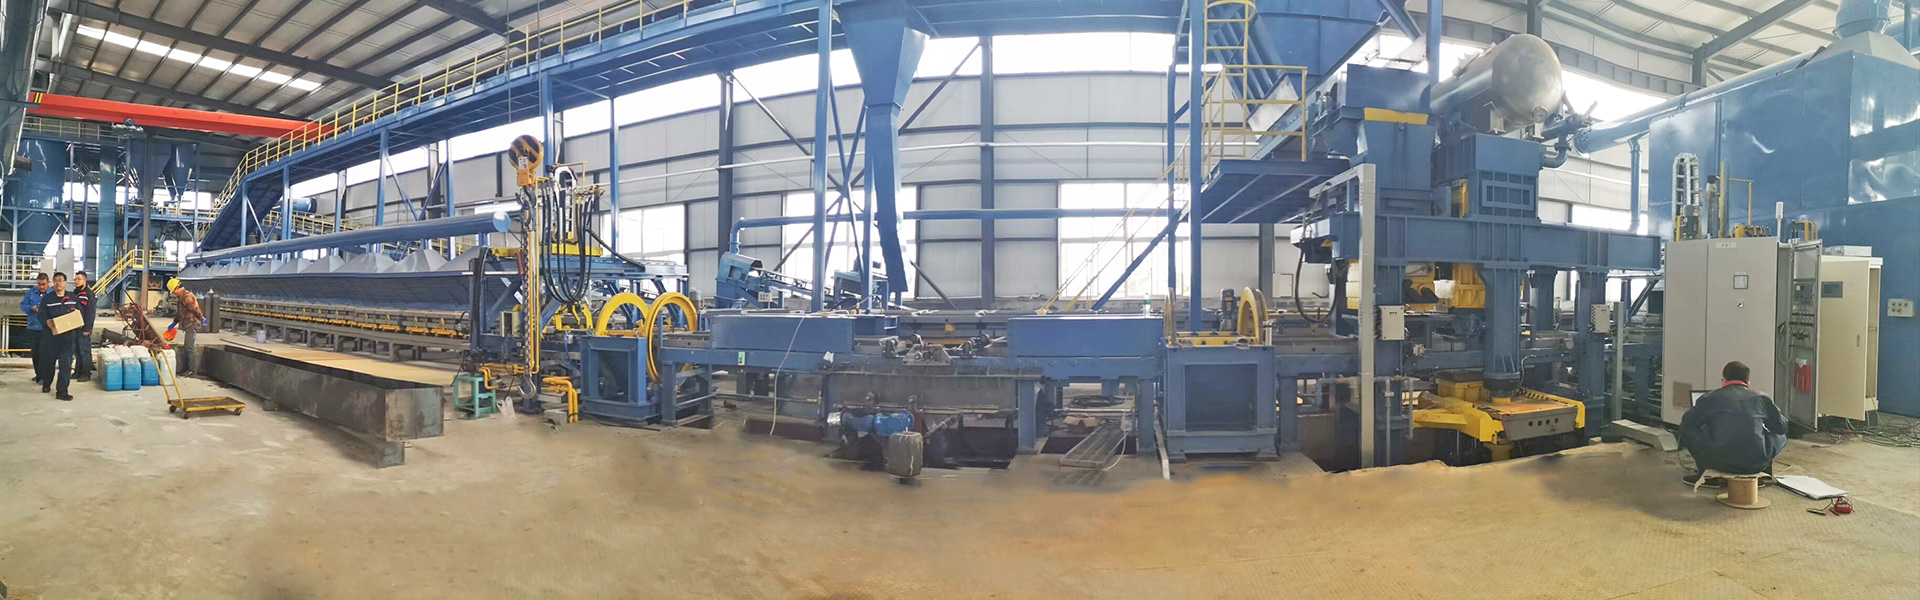 Statoc high pressure molding line